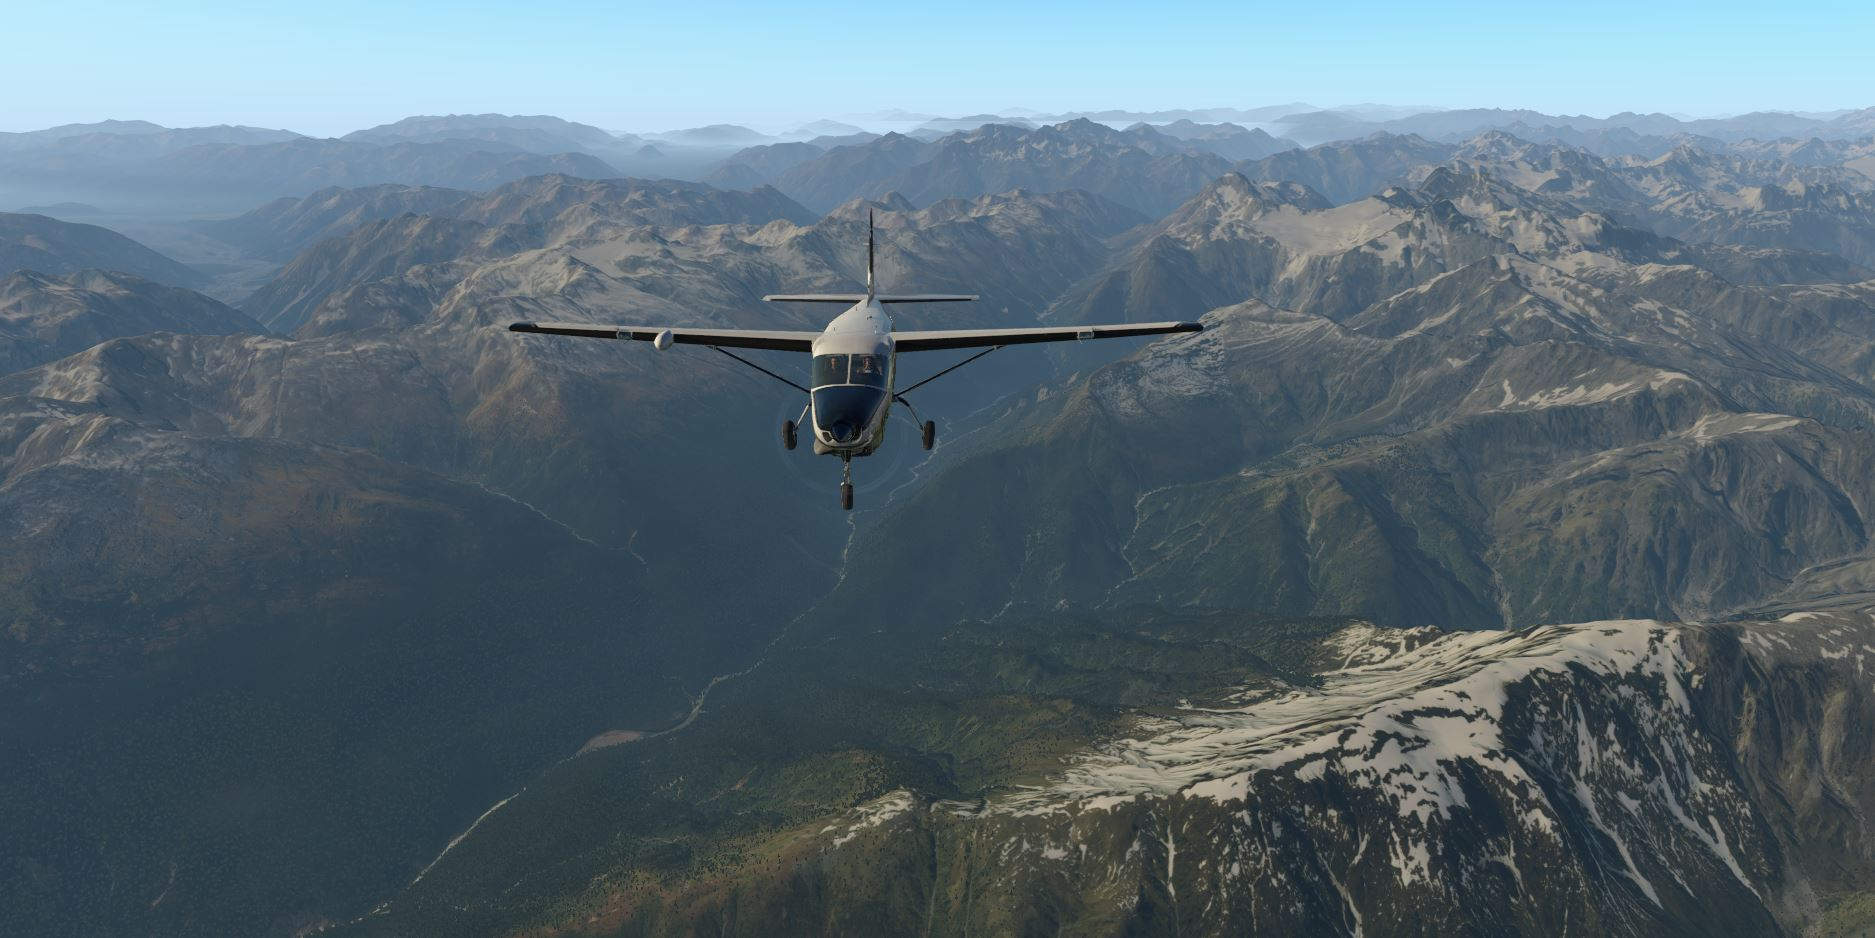 Lyndiman's New Zealand Ortho Photography Set (X-Plane) – Lyndiman's Blog